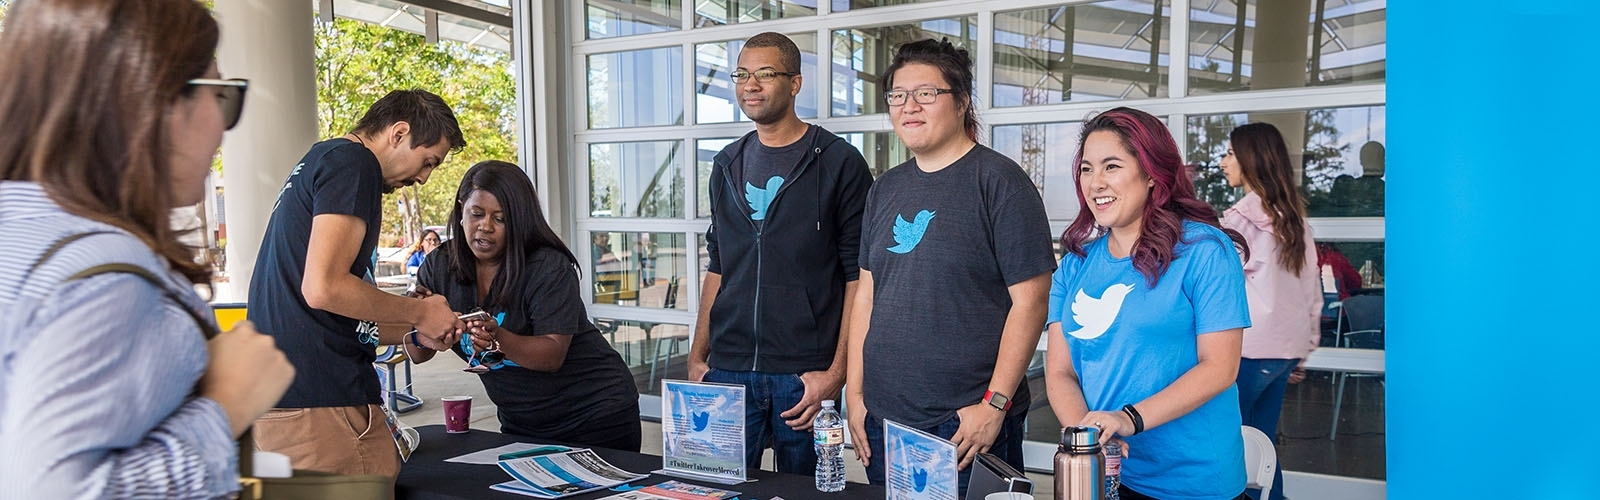 Twitter staff greet students at a hiring event